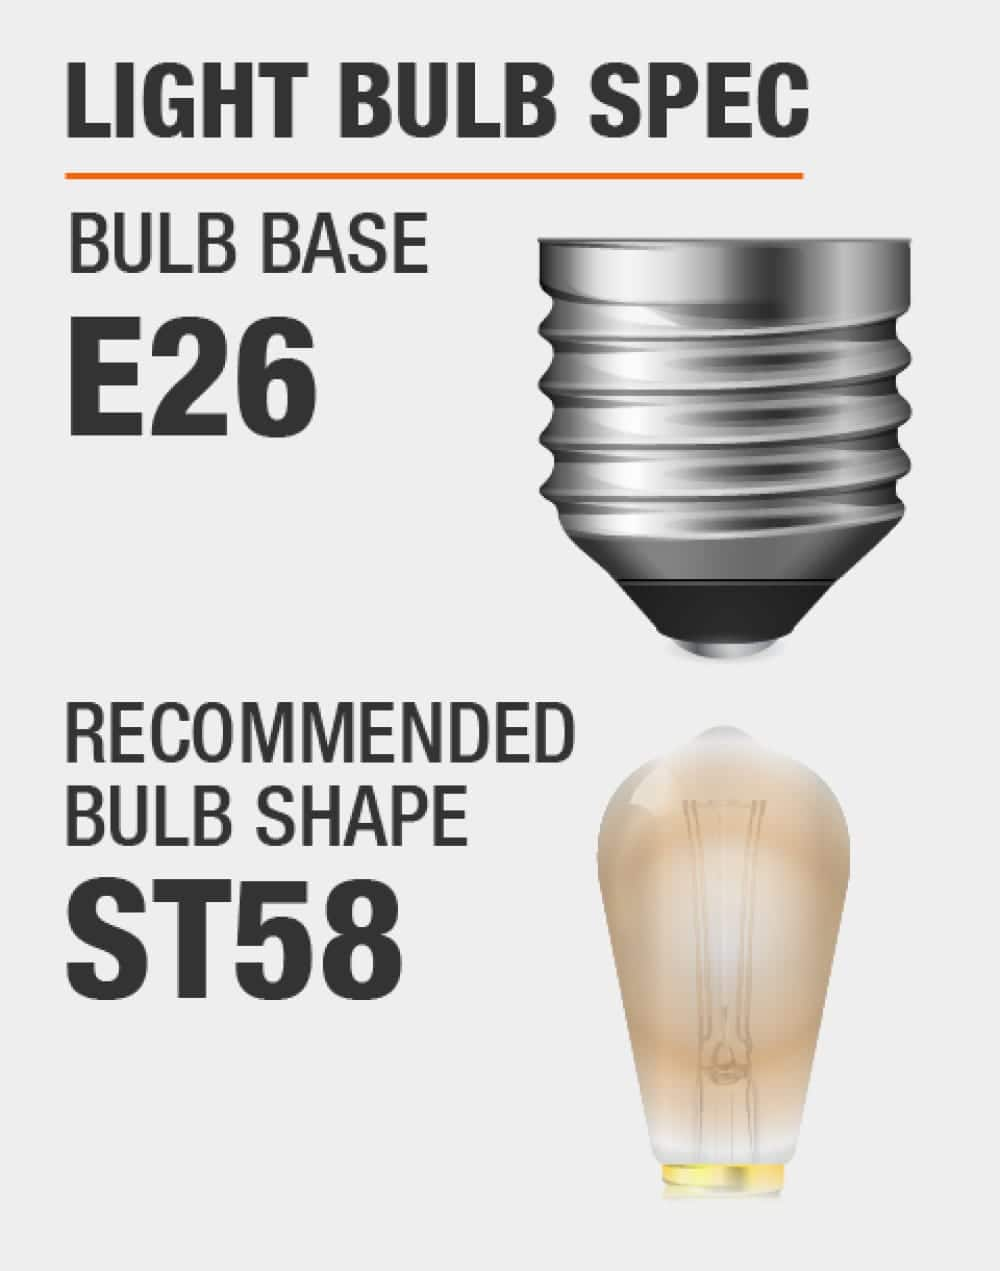 this fixture fits bulbs with E26 base and recommended bulb shape is ST58